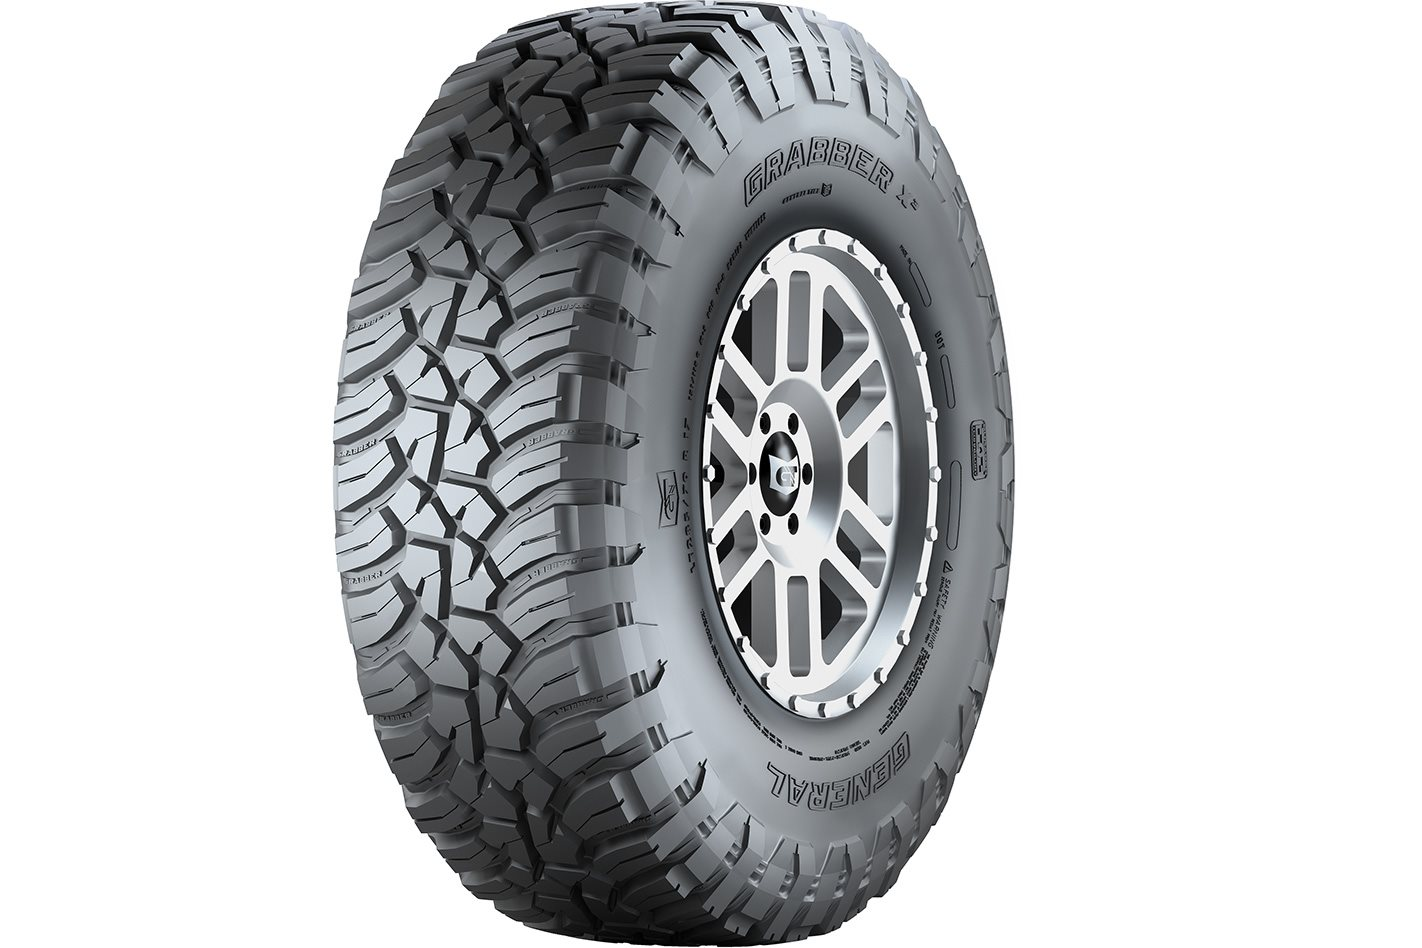 Continental Tyres Grabber AT3 and Grabber X3